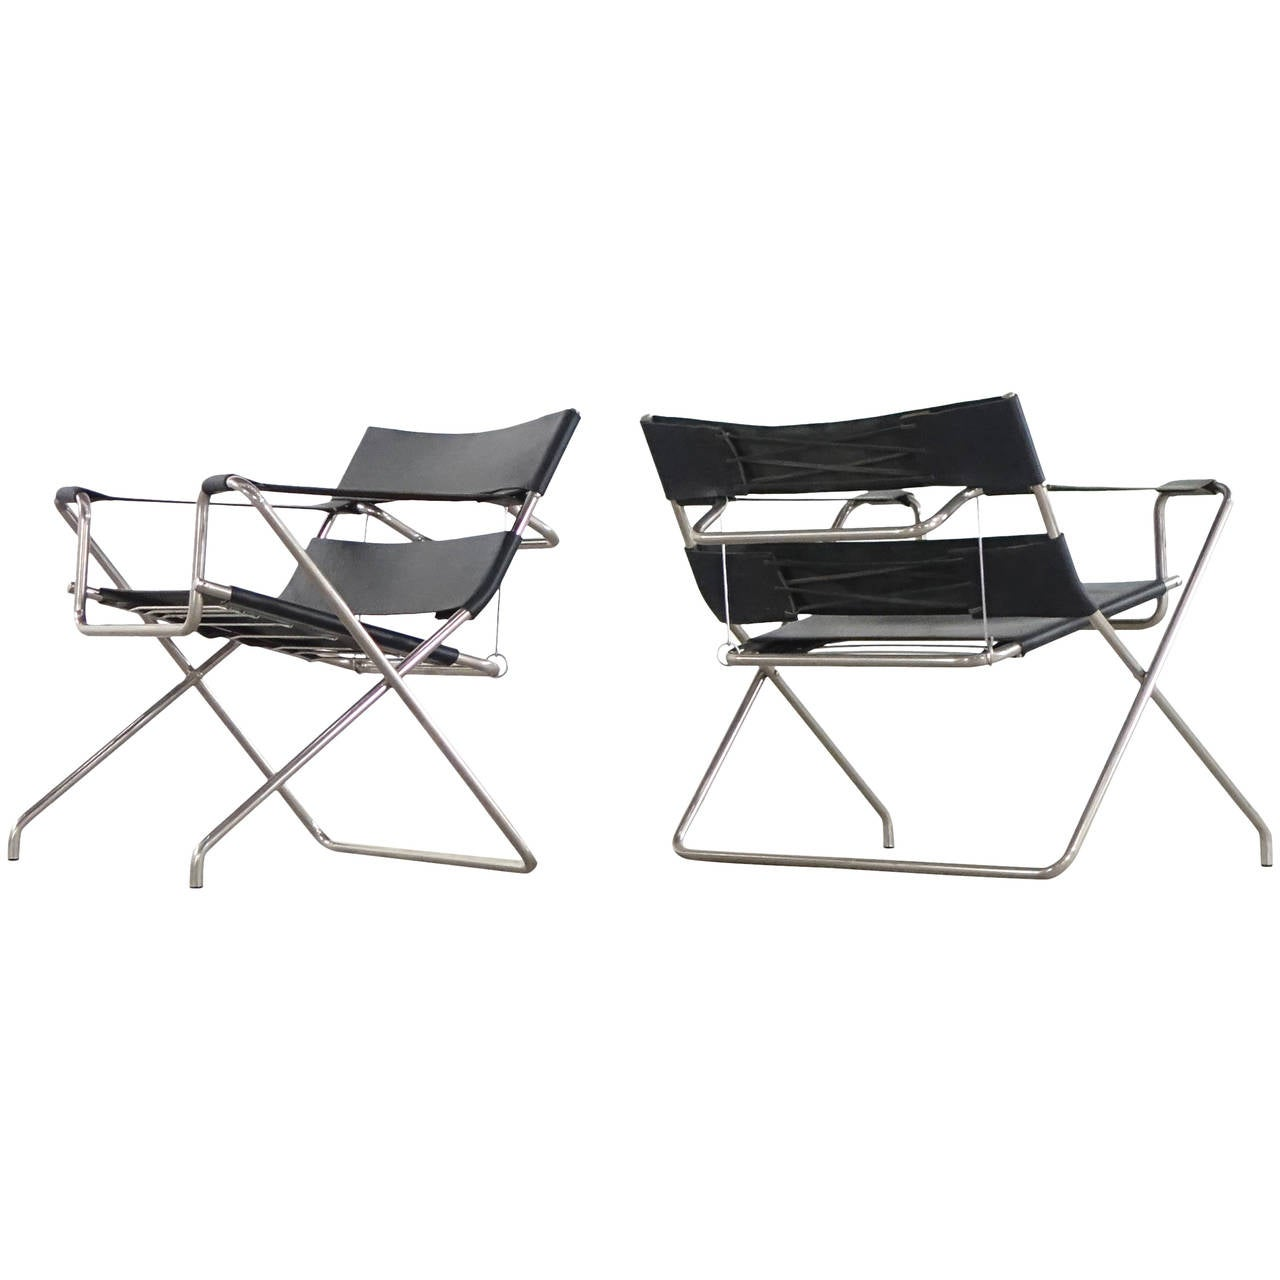 two marcel breuer d4 b4 folding chairs wassily bauhaus 1926 1927 at 1stdibs. Black Bedroom Furniture Sets. Home Design Ideas